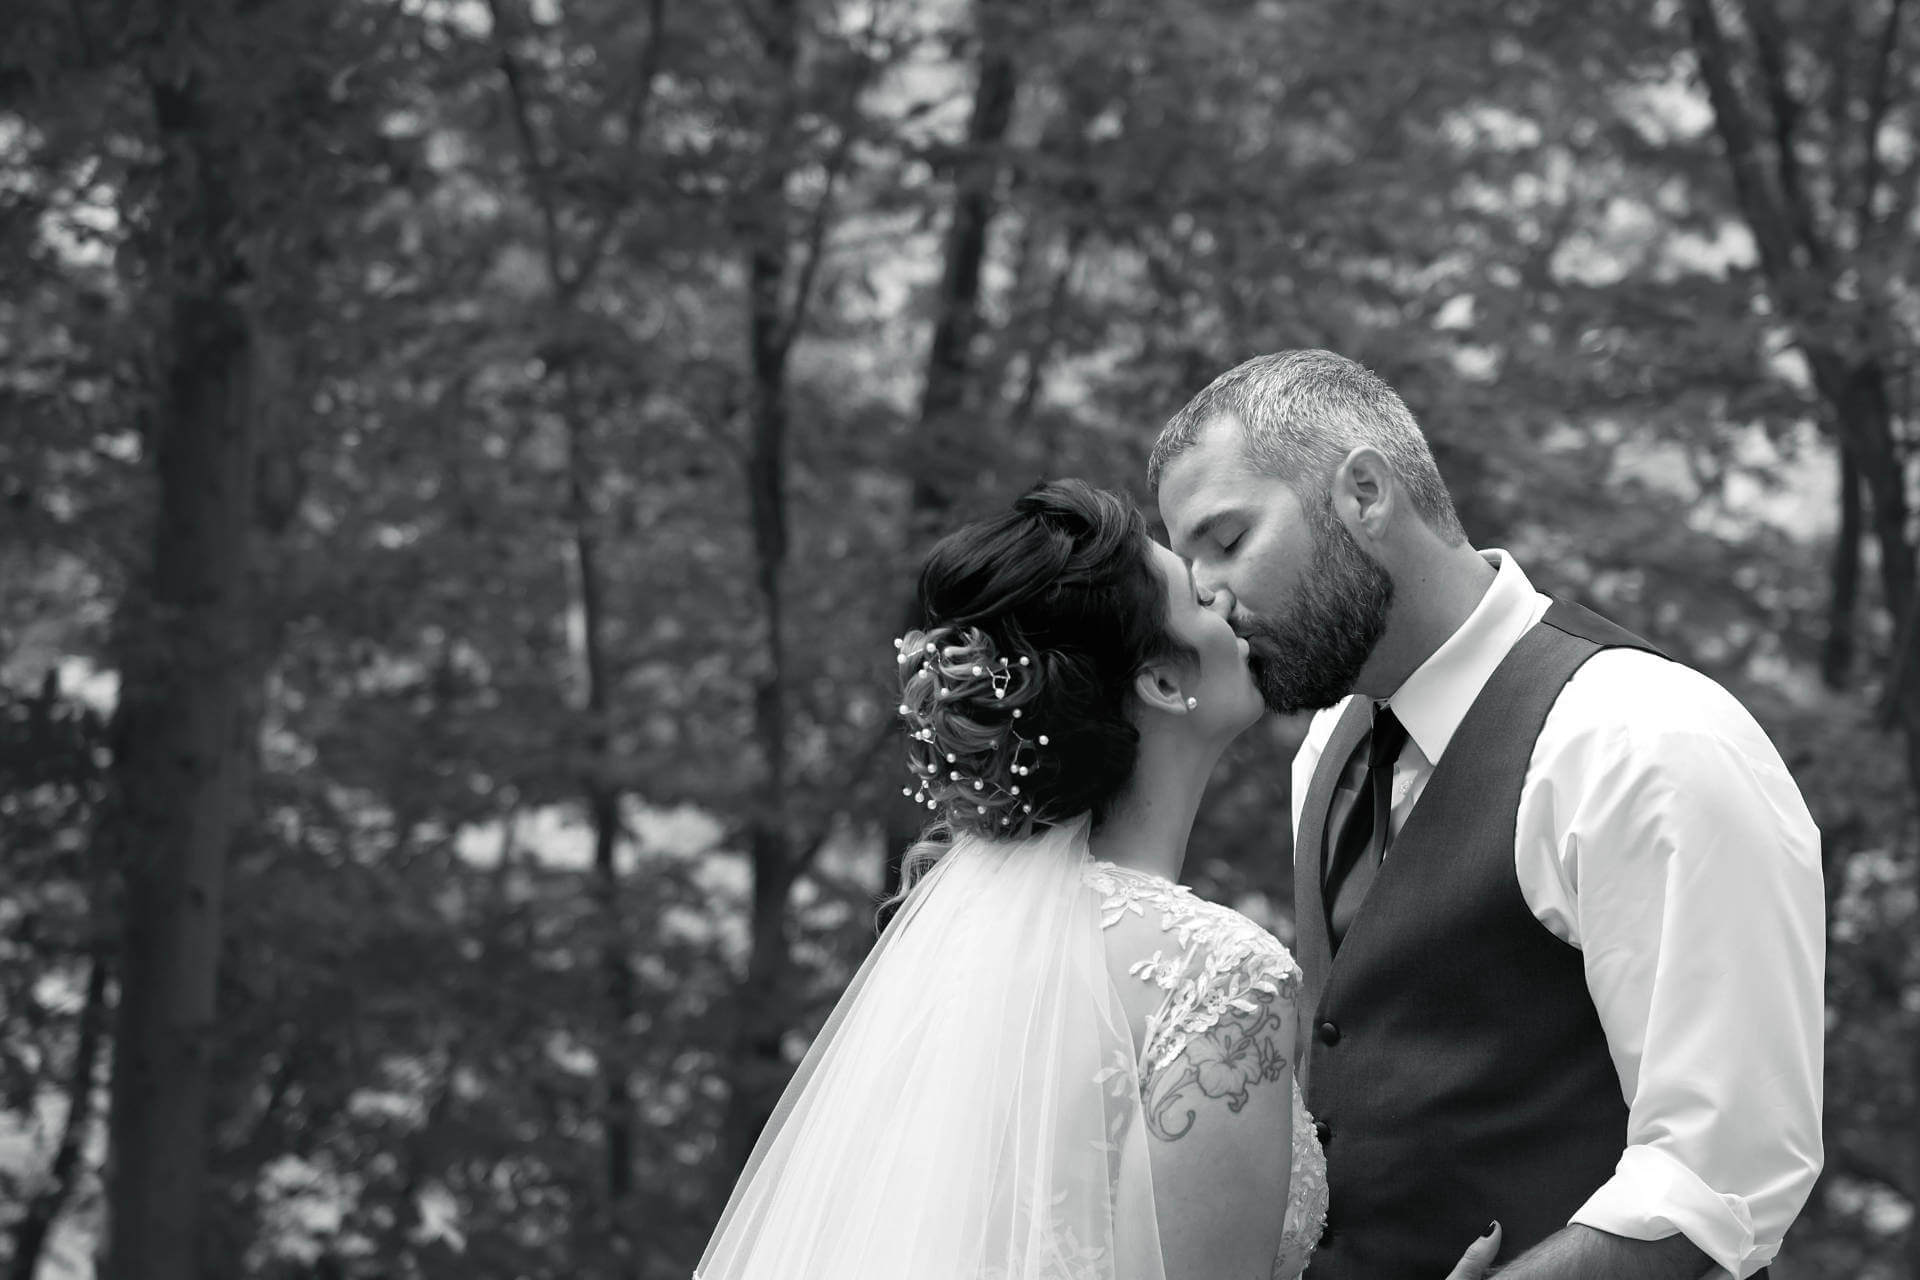 Kissing Husband and Wife in B&W   Kropp Photography - Wedding Photography Portfolio